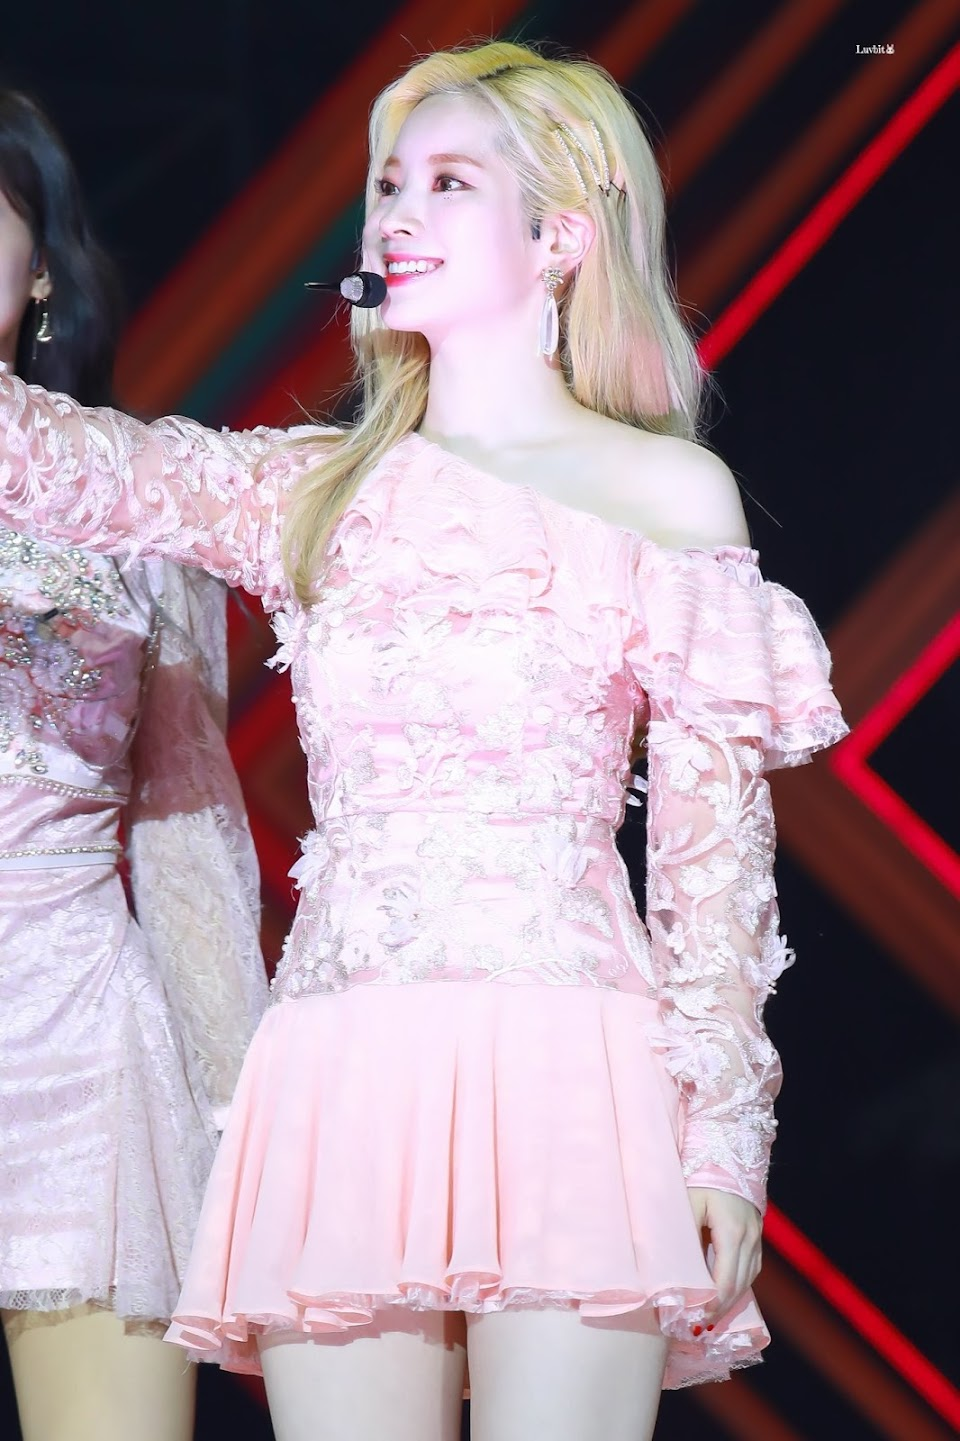 dahyun shoulder 18